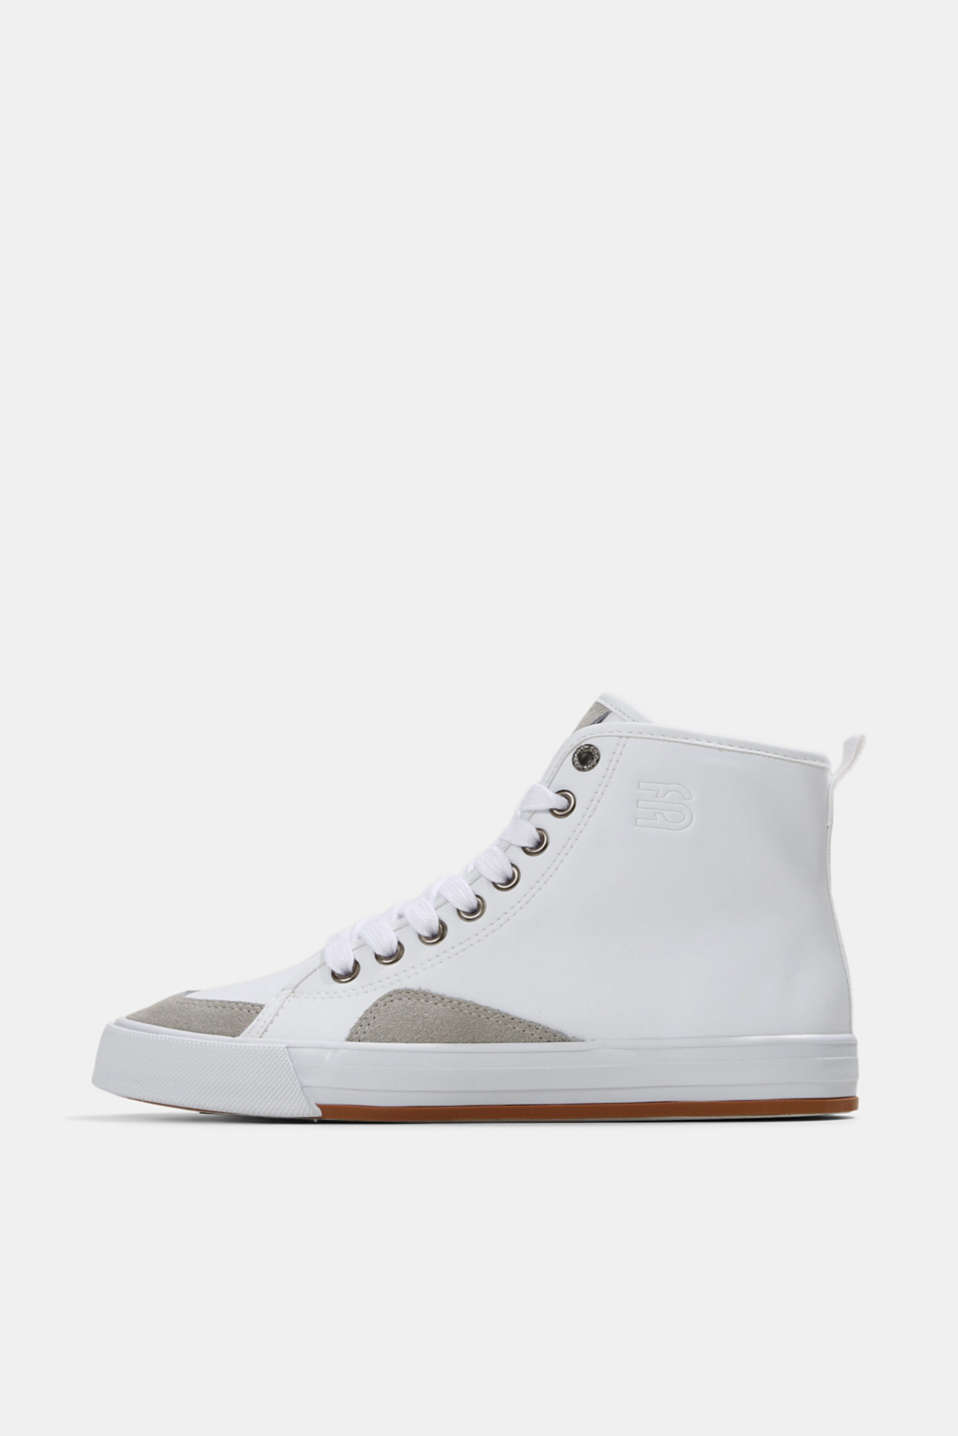 Esprit - Including leather: High-top trainers in a mix of materials